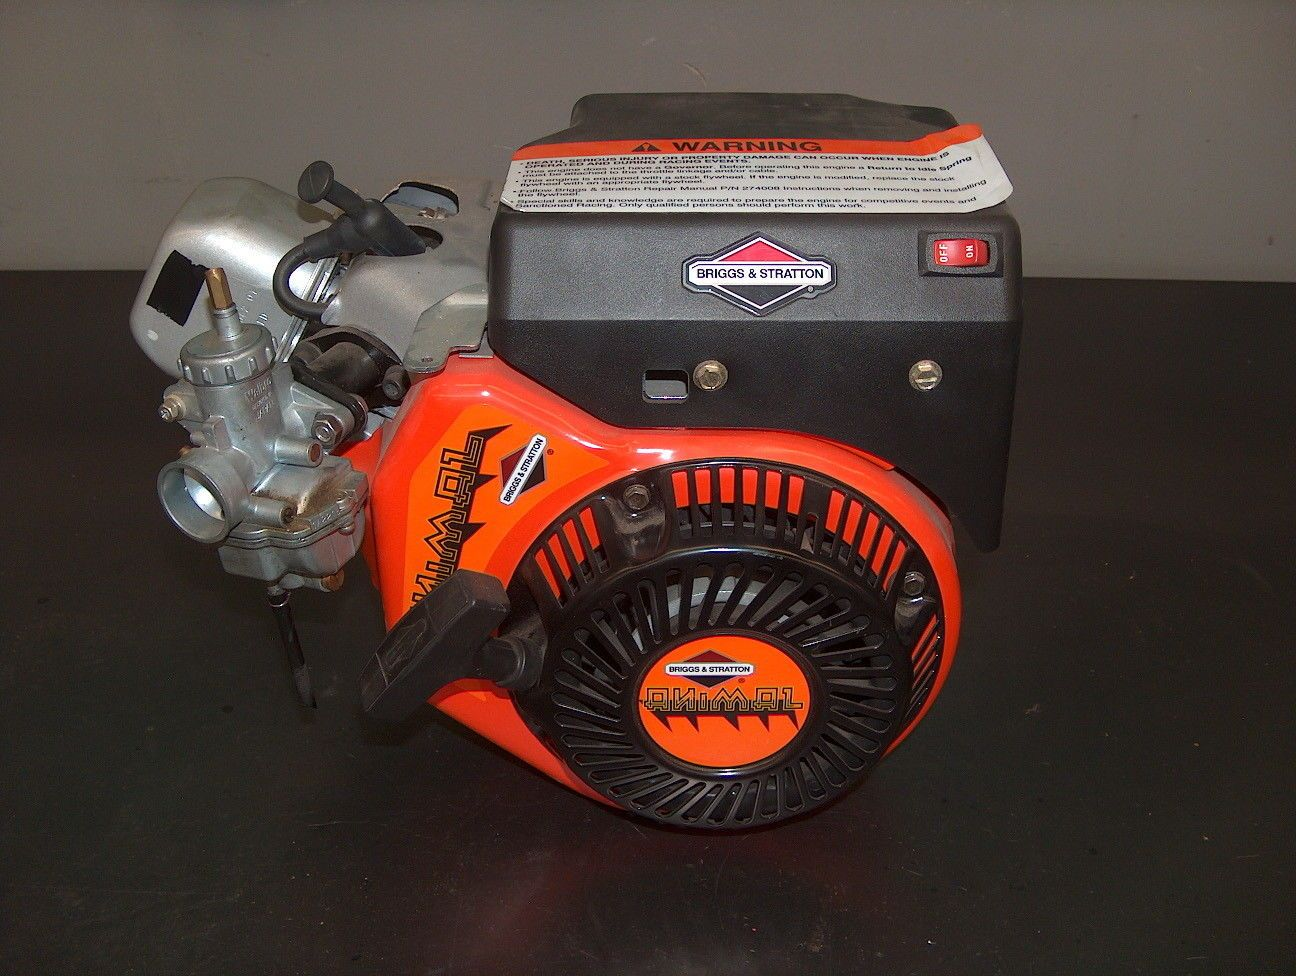 Briggs and Stratton Animal Engine Racing Go Kart Mini Bike